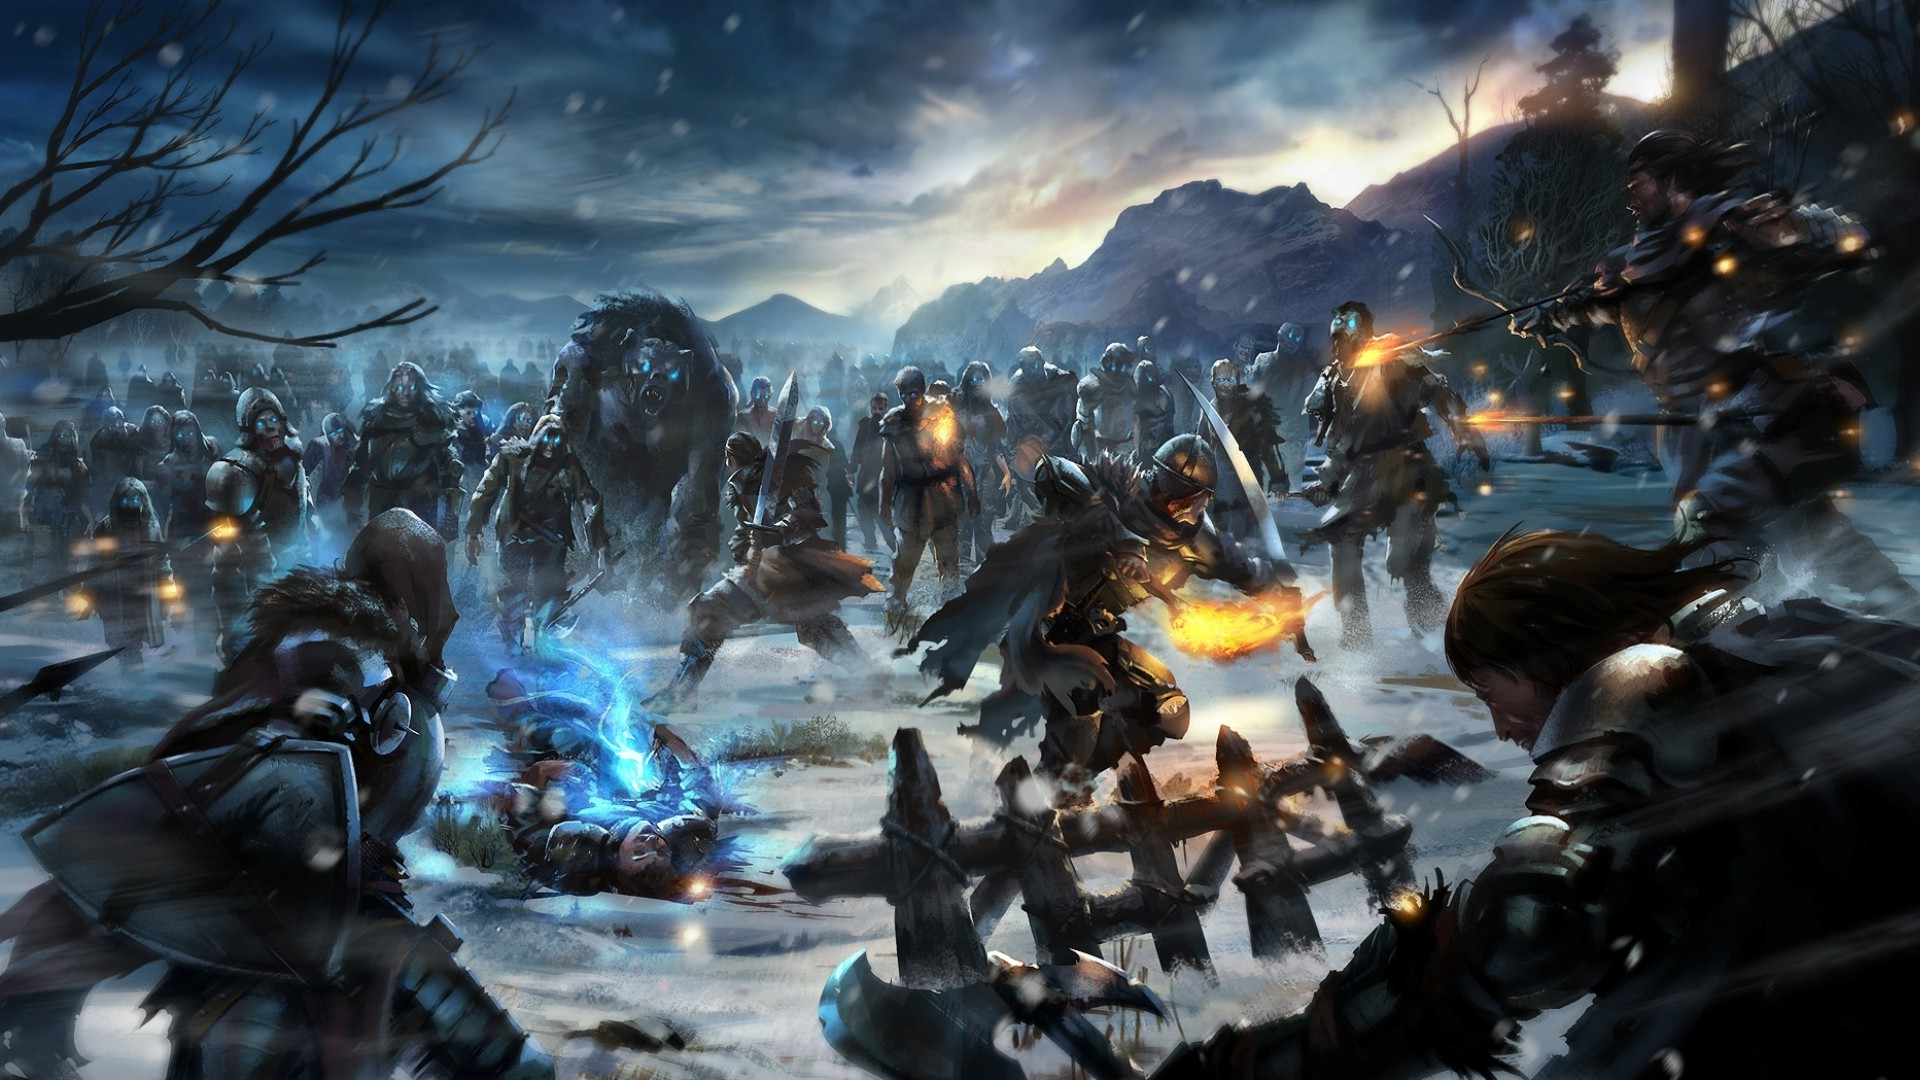 Epic Girl With Gun Wallpaper Game Of Thrones White Walkers Video Games Fantasy Art